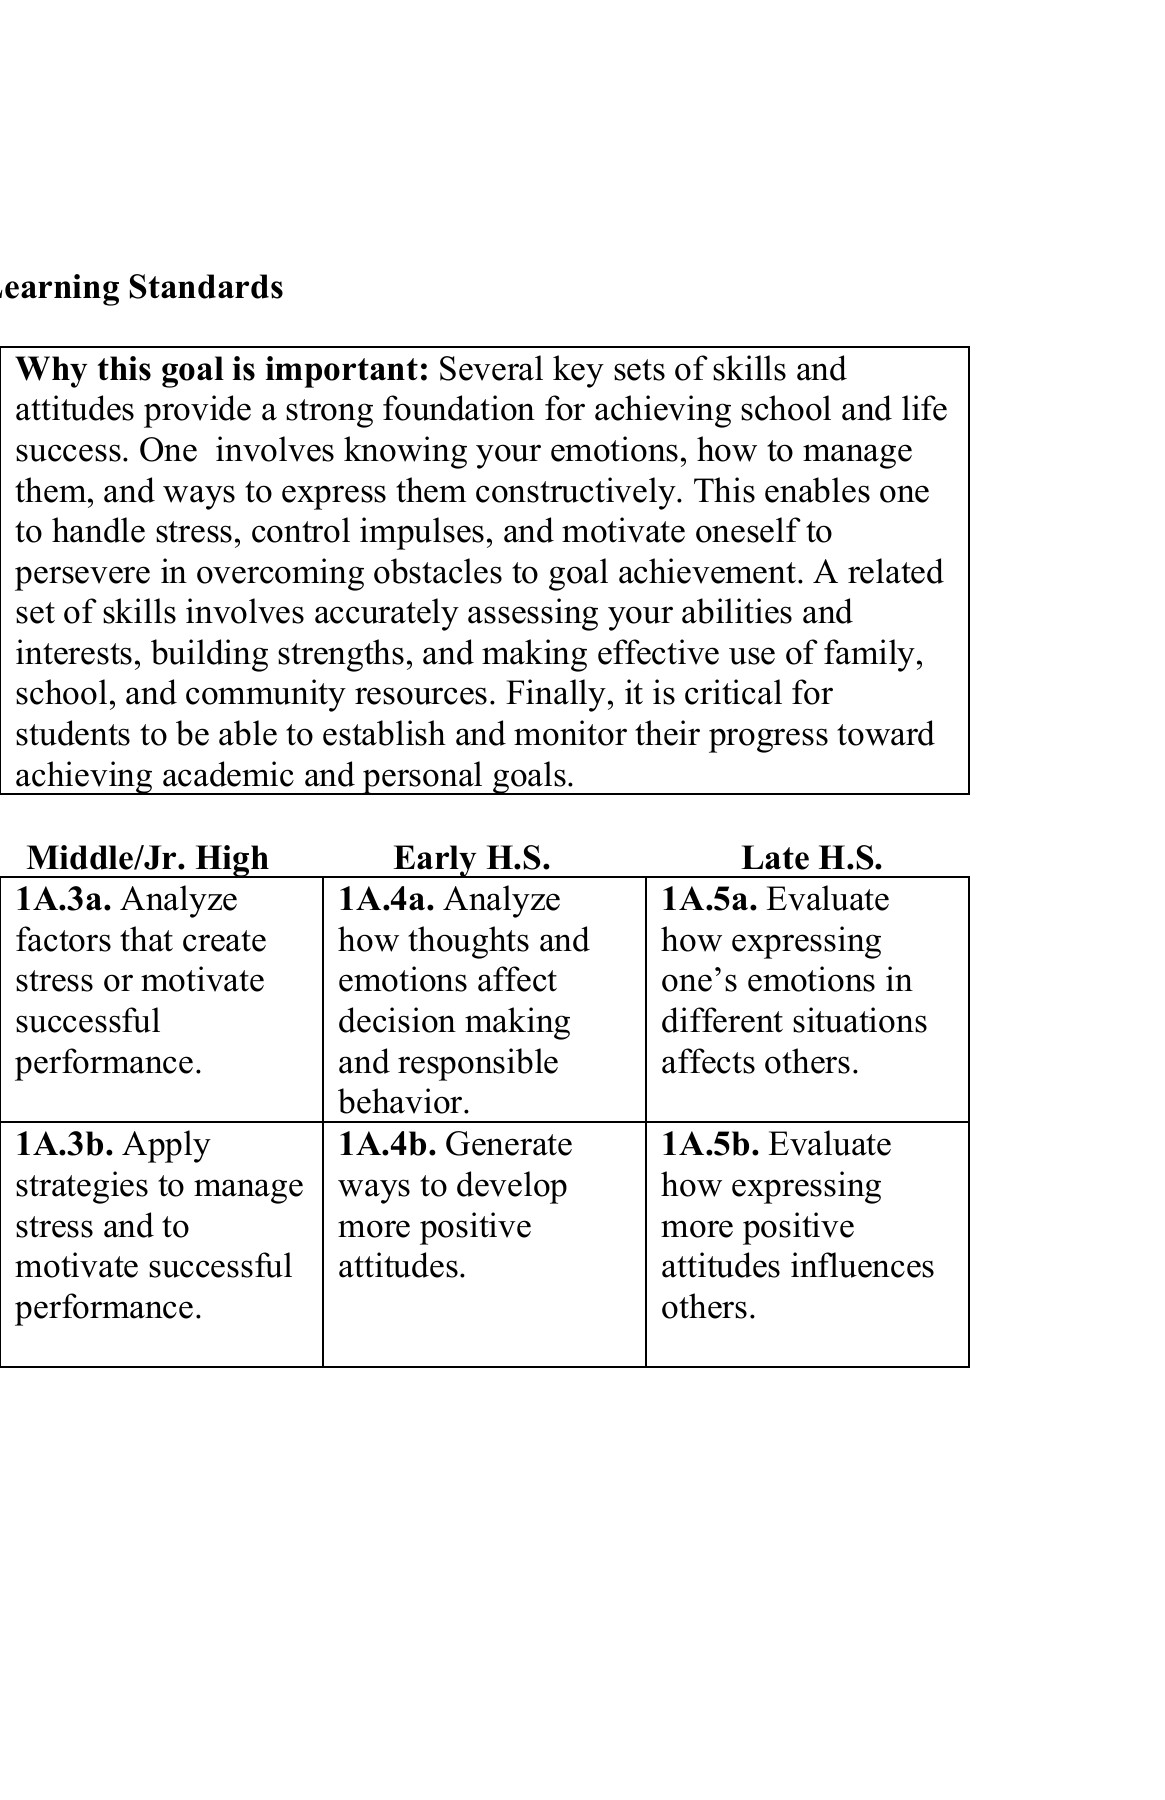 How Emotions Affect Learning Behaviors >> Social Emotional Learning Standards Why This Goal Isbe Pages 1 6